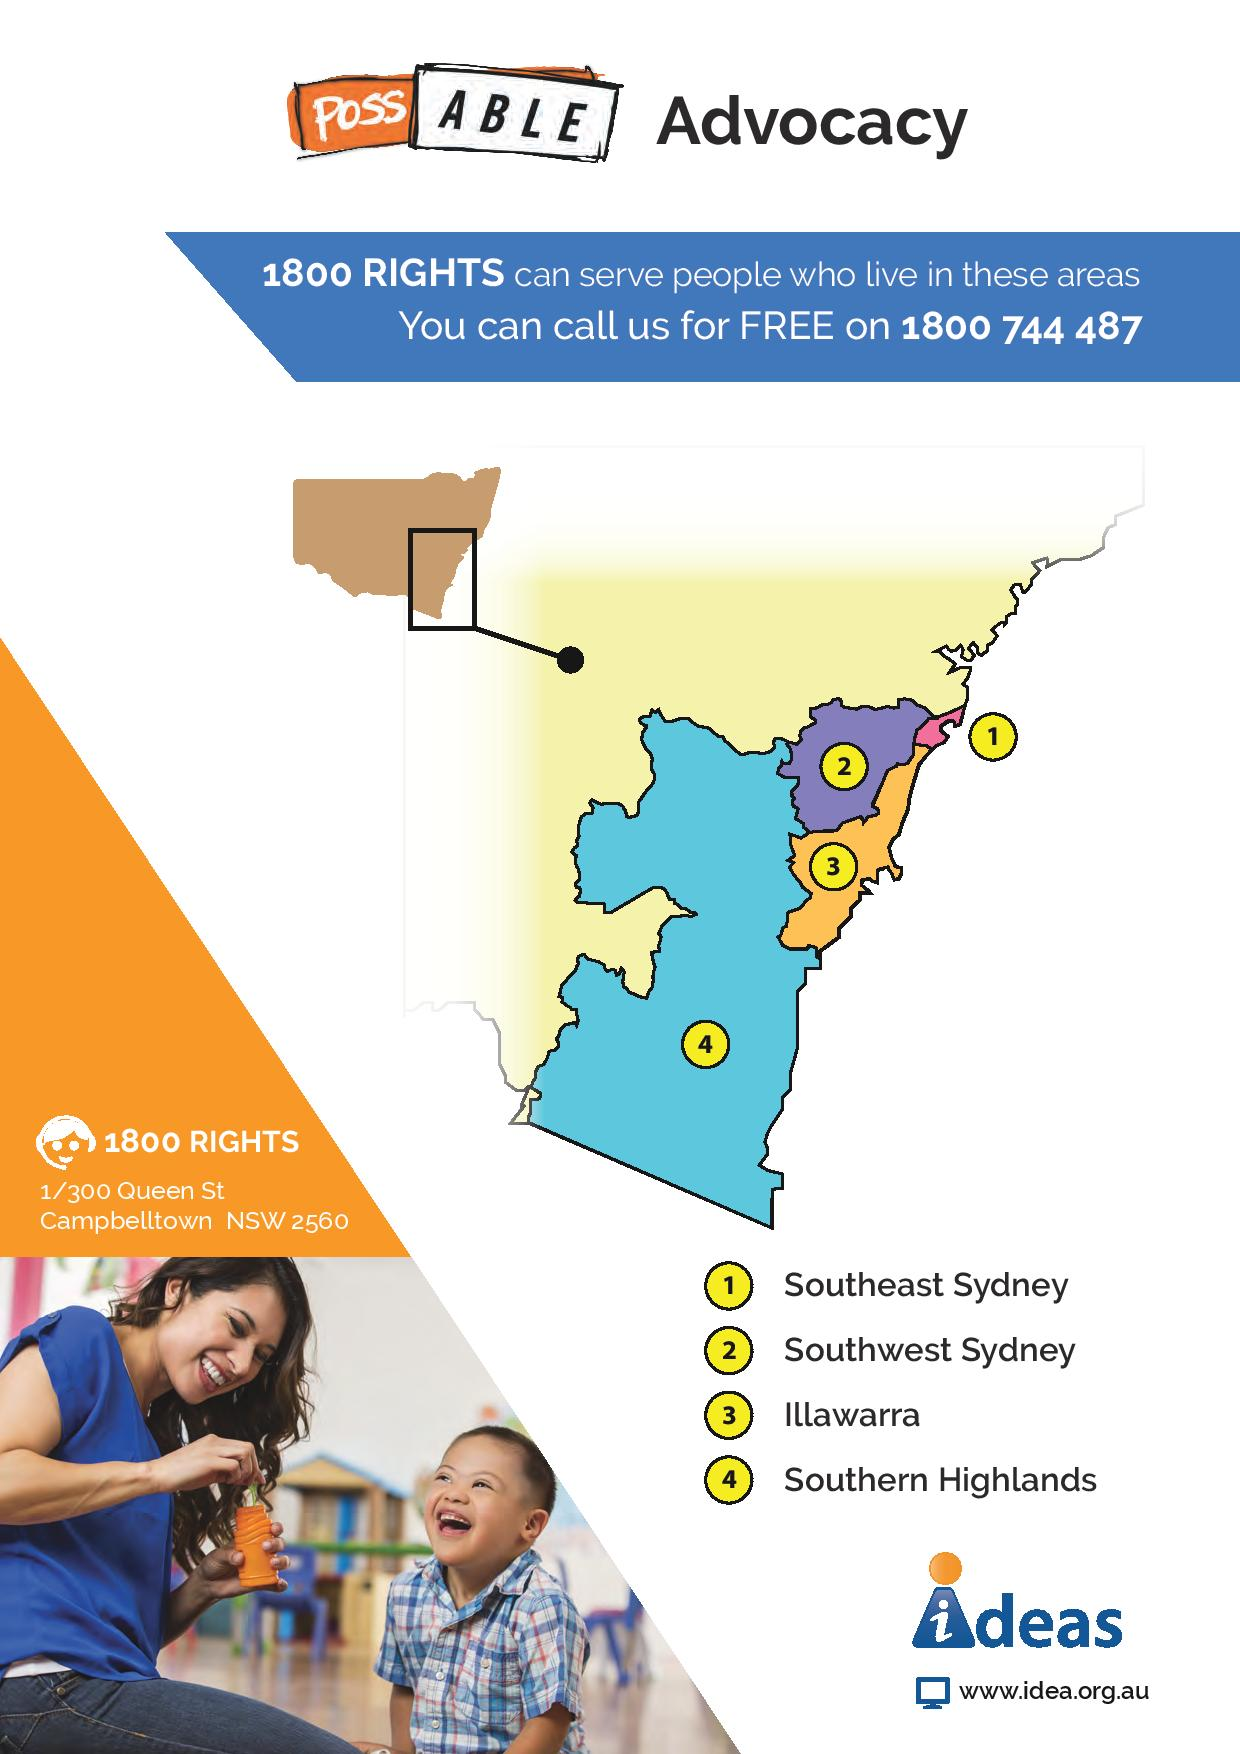 1800 RIGHTS can service people who live in these areas. You can call us for FREE on 1800 744 487. 1: Southeast Sydney 2: Southwest Sydney 3: Illawarra 4: Southern Highlands